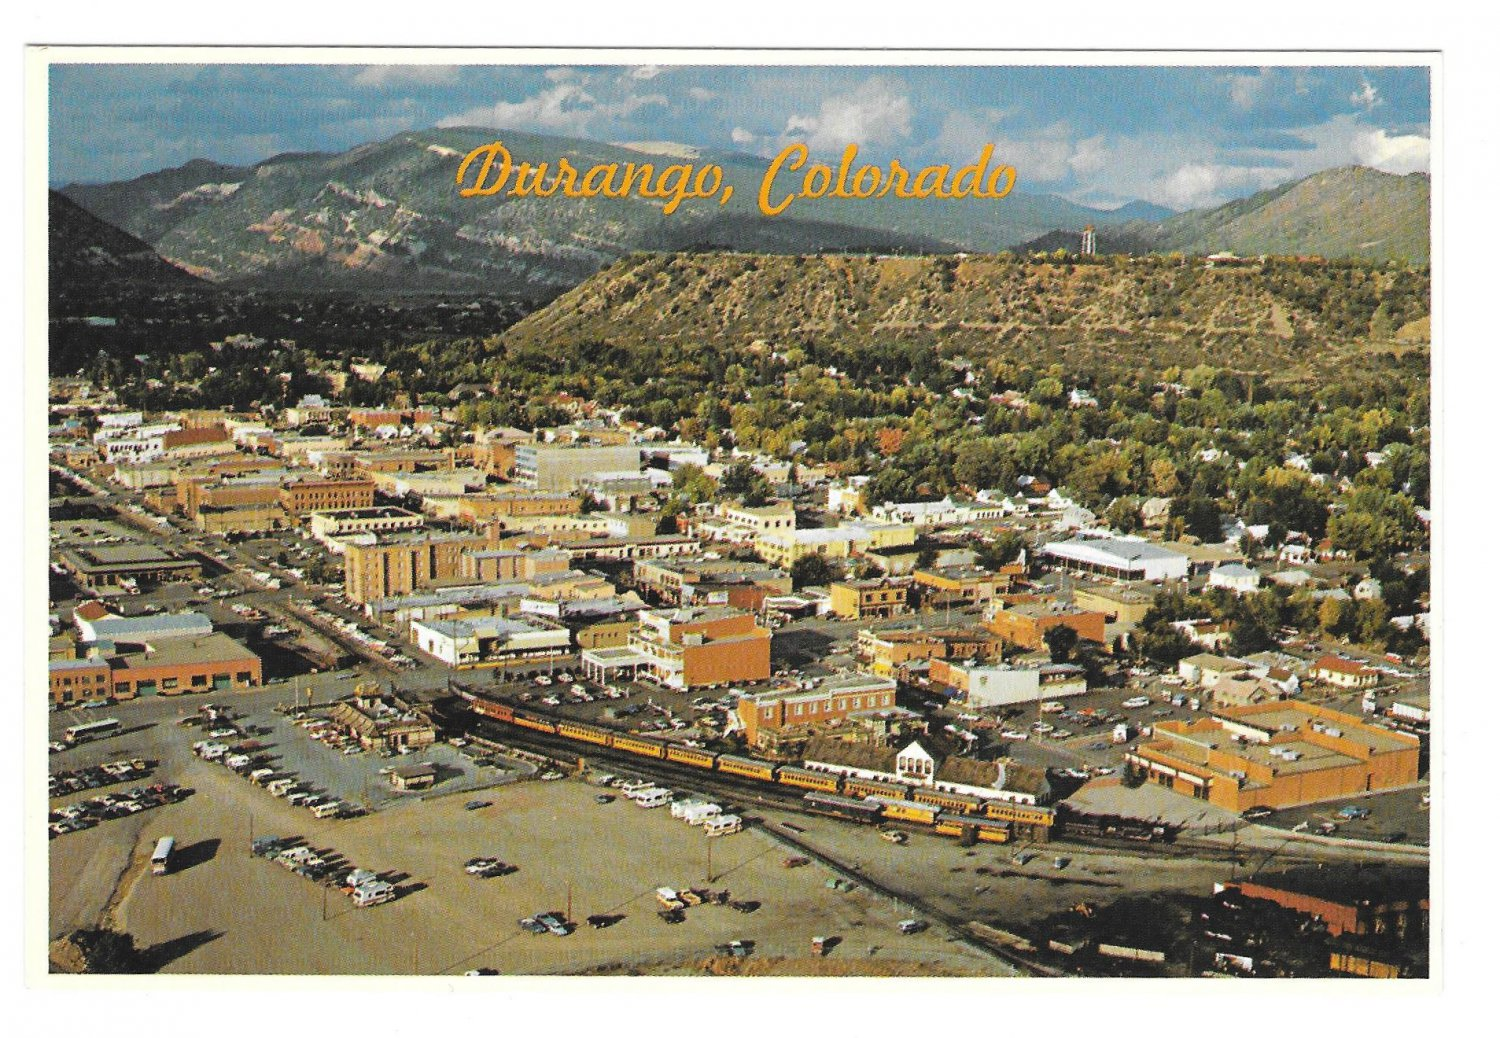 Durango Colorado Aerial View Silverton Narrow Gauge Train Petley 4X6 Postcard